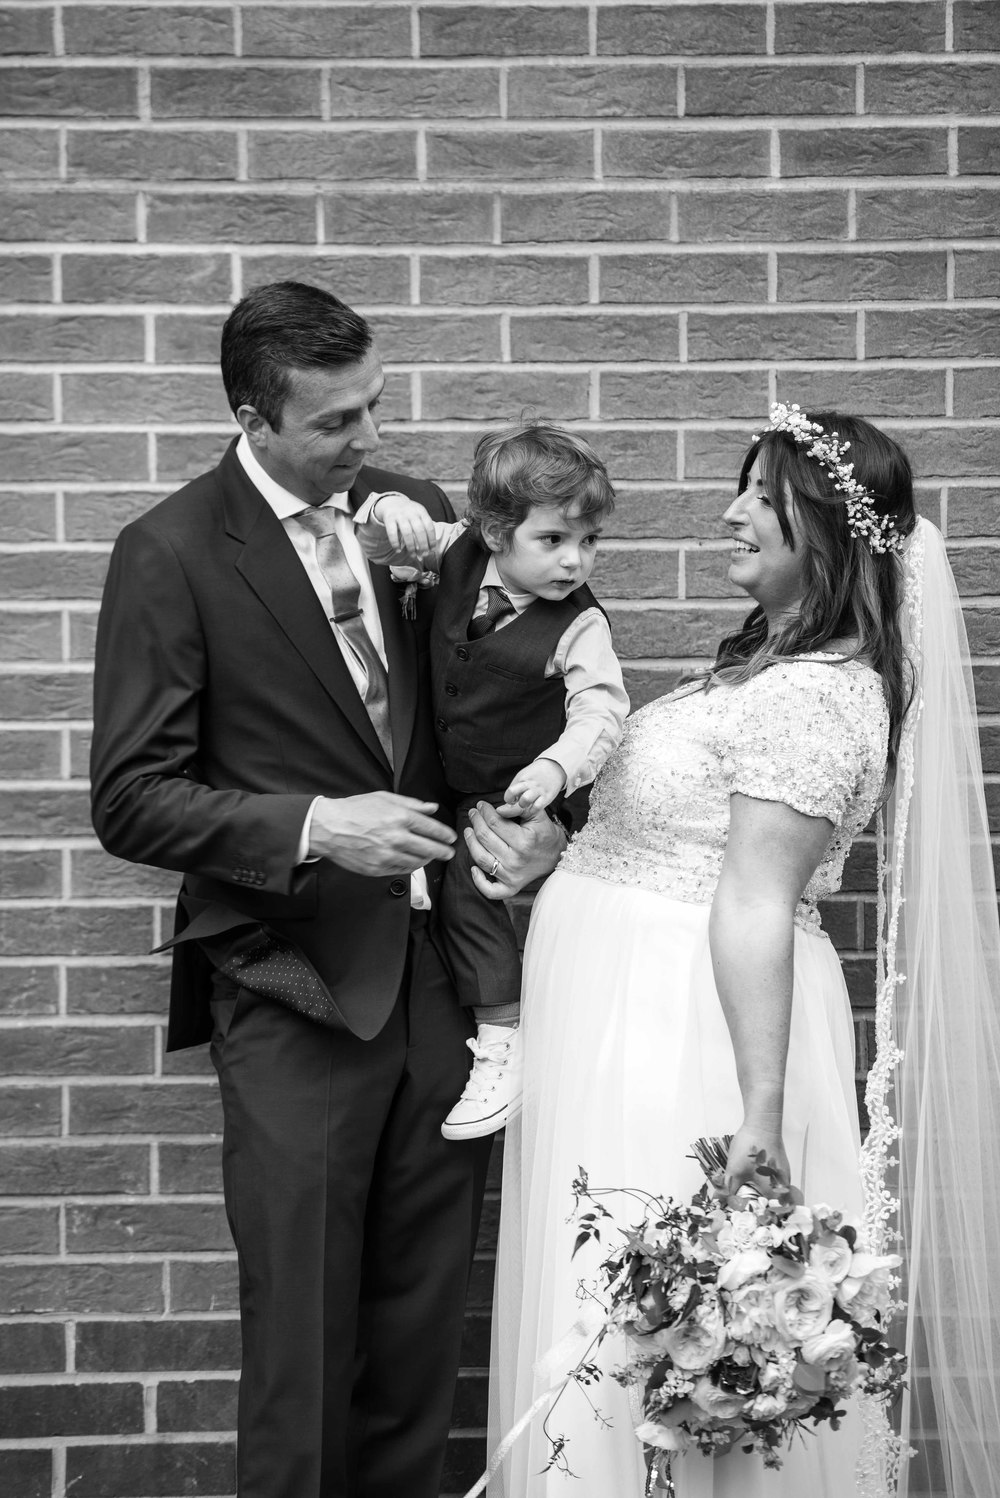 Natalie & Adam SM (138 of 200).jpg